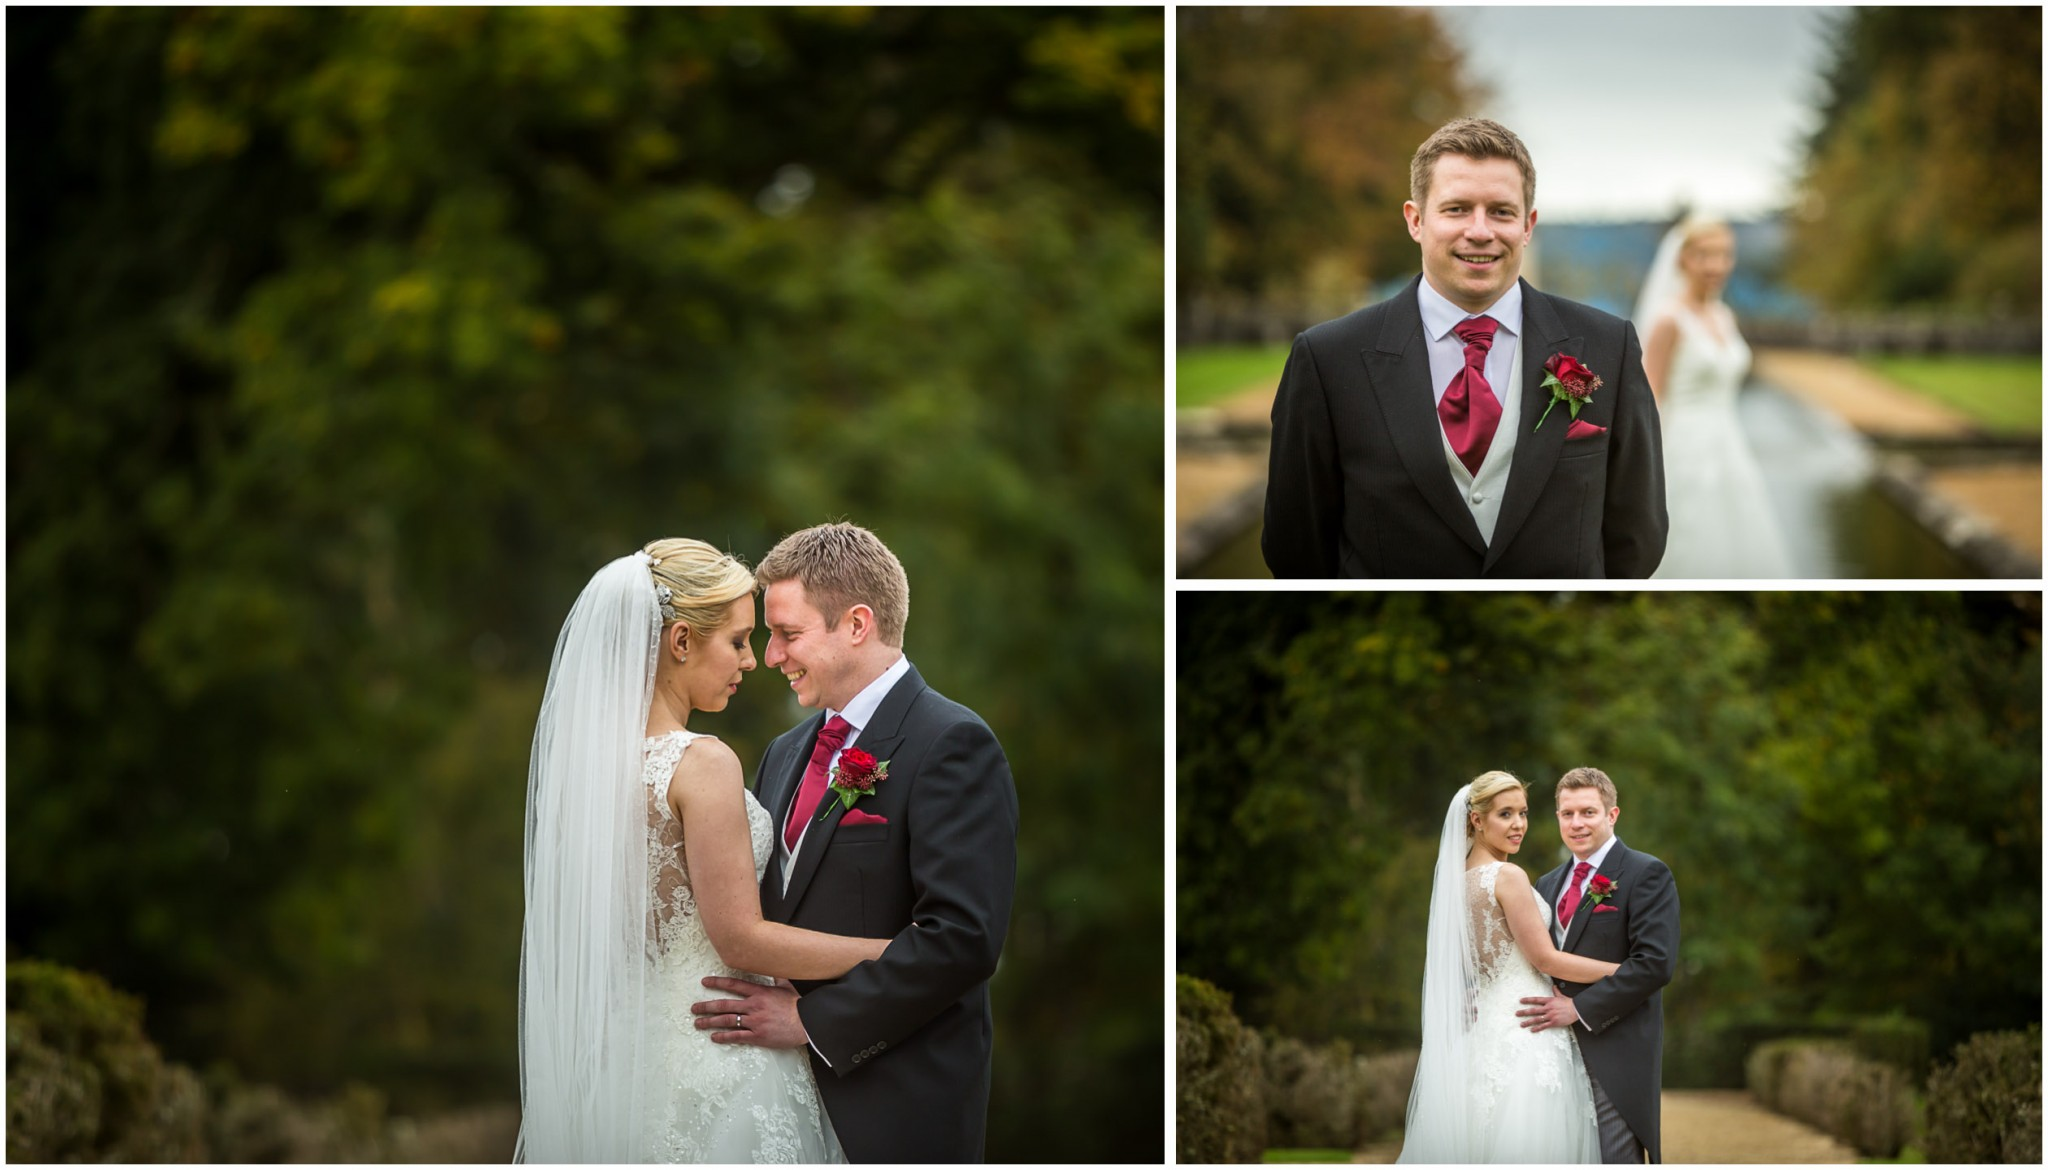 Rhinefield House Wedding Groom with Bride in gardens